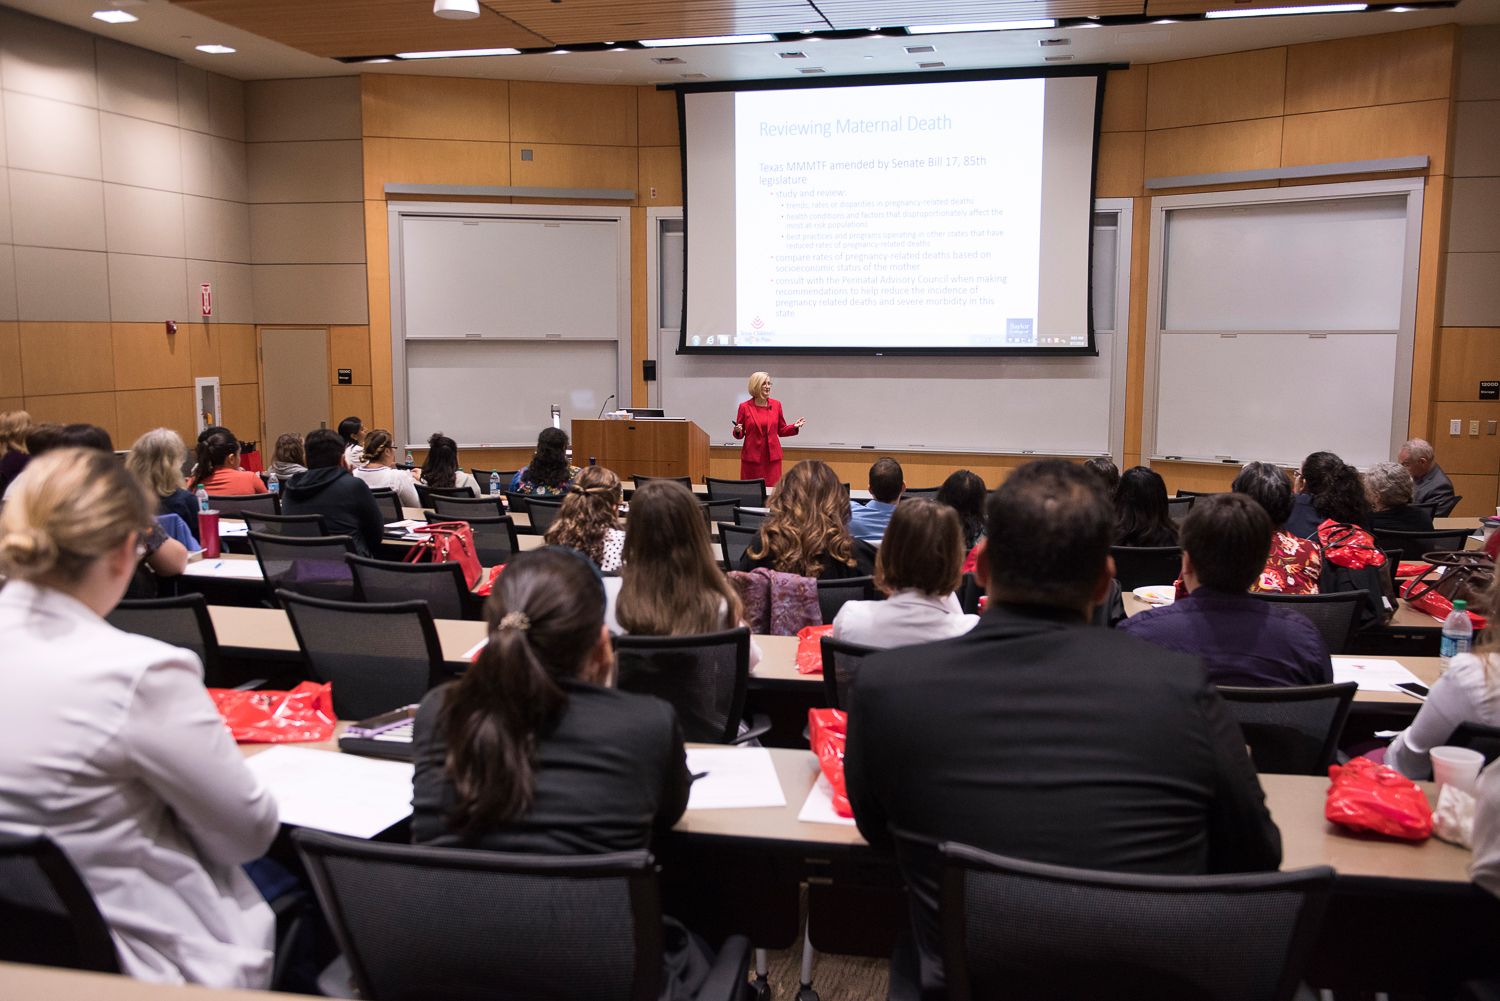 On Friday, Sept. 7, the Paul L. Foster School of Medicine hosted its 13th Annual Obstetrics and Gynecology Symposium.